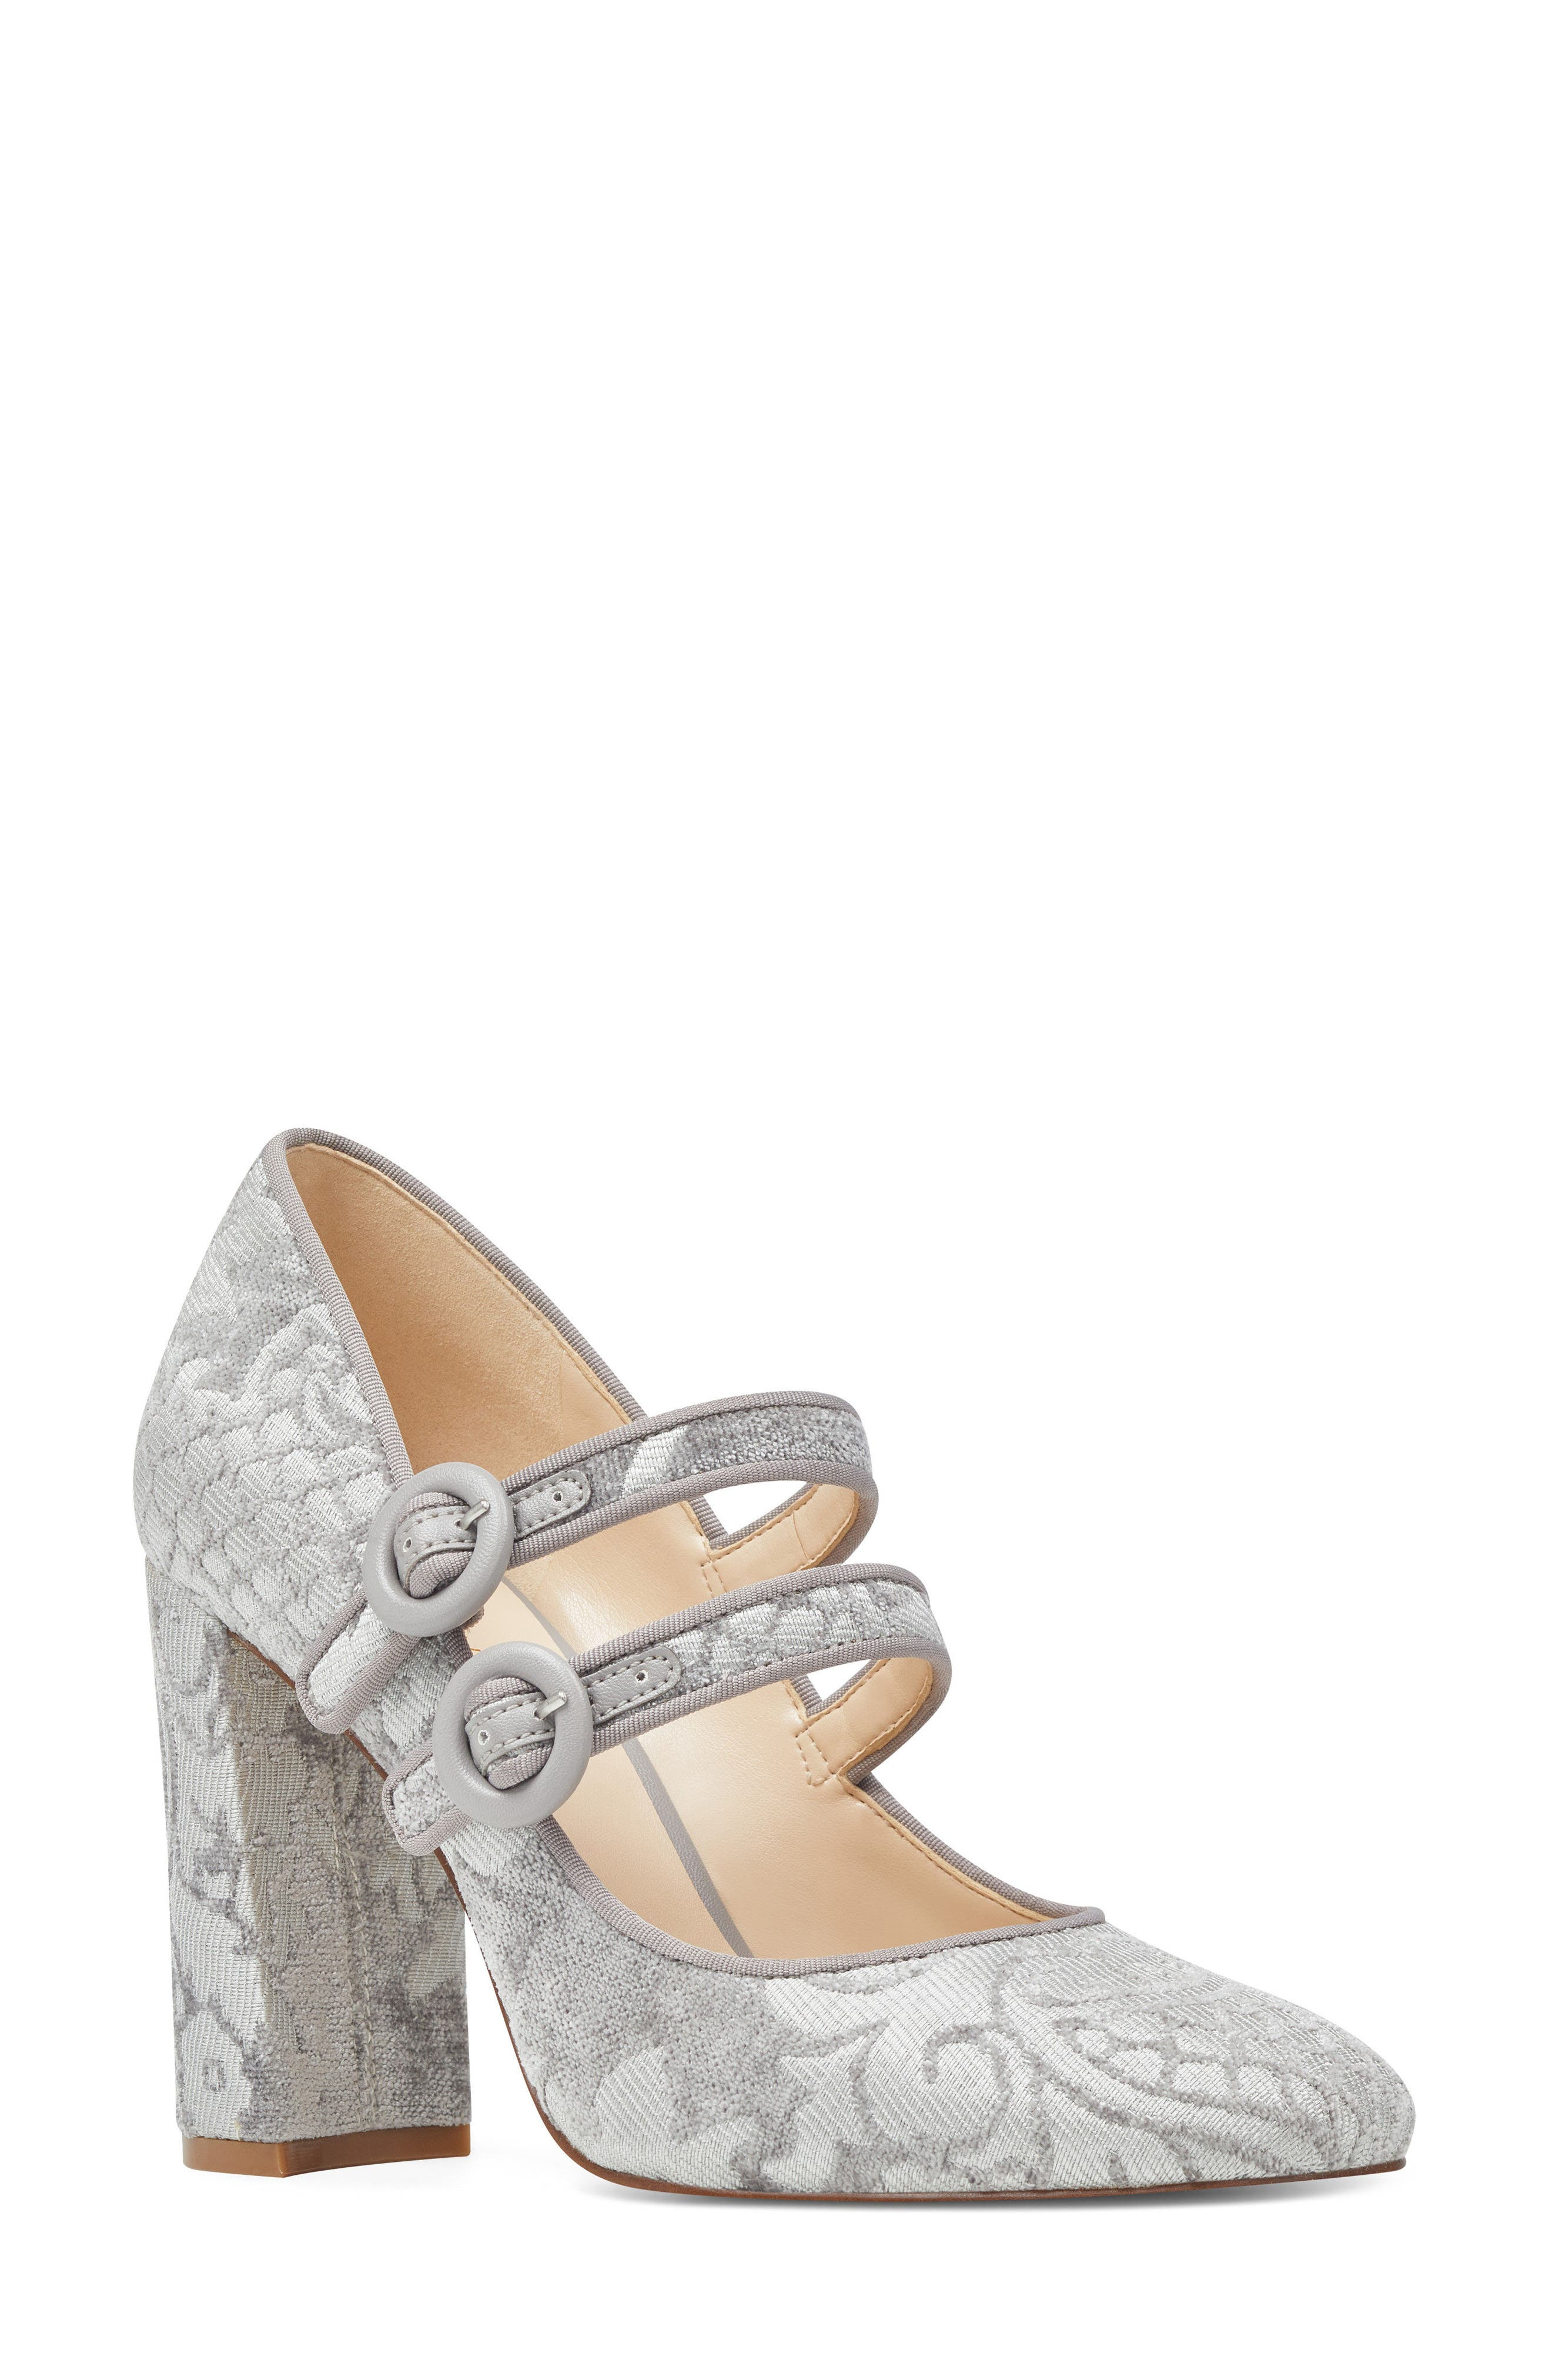 Dabney Double Strap Mary Jane Pump,                             Main thumbnail 2, color,